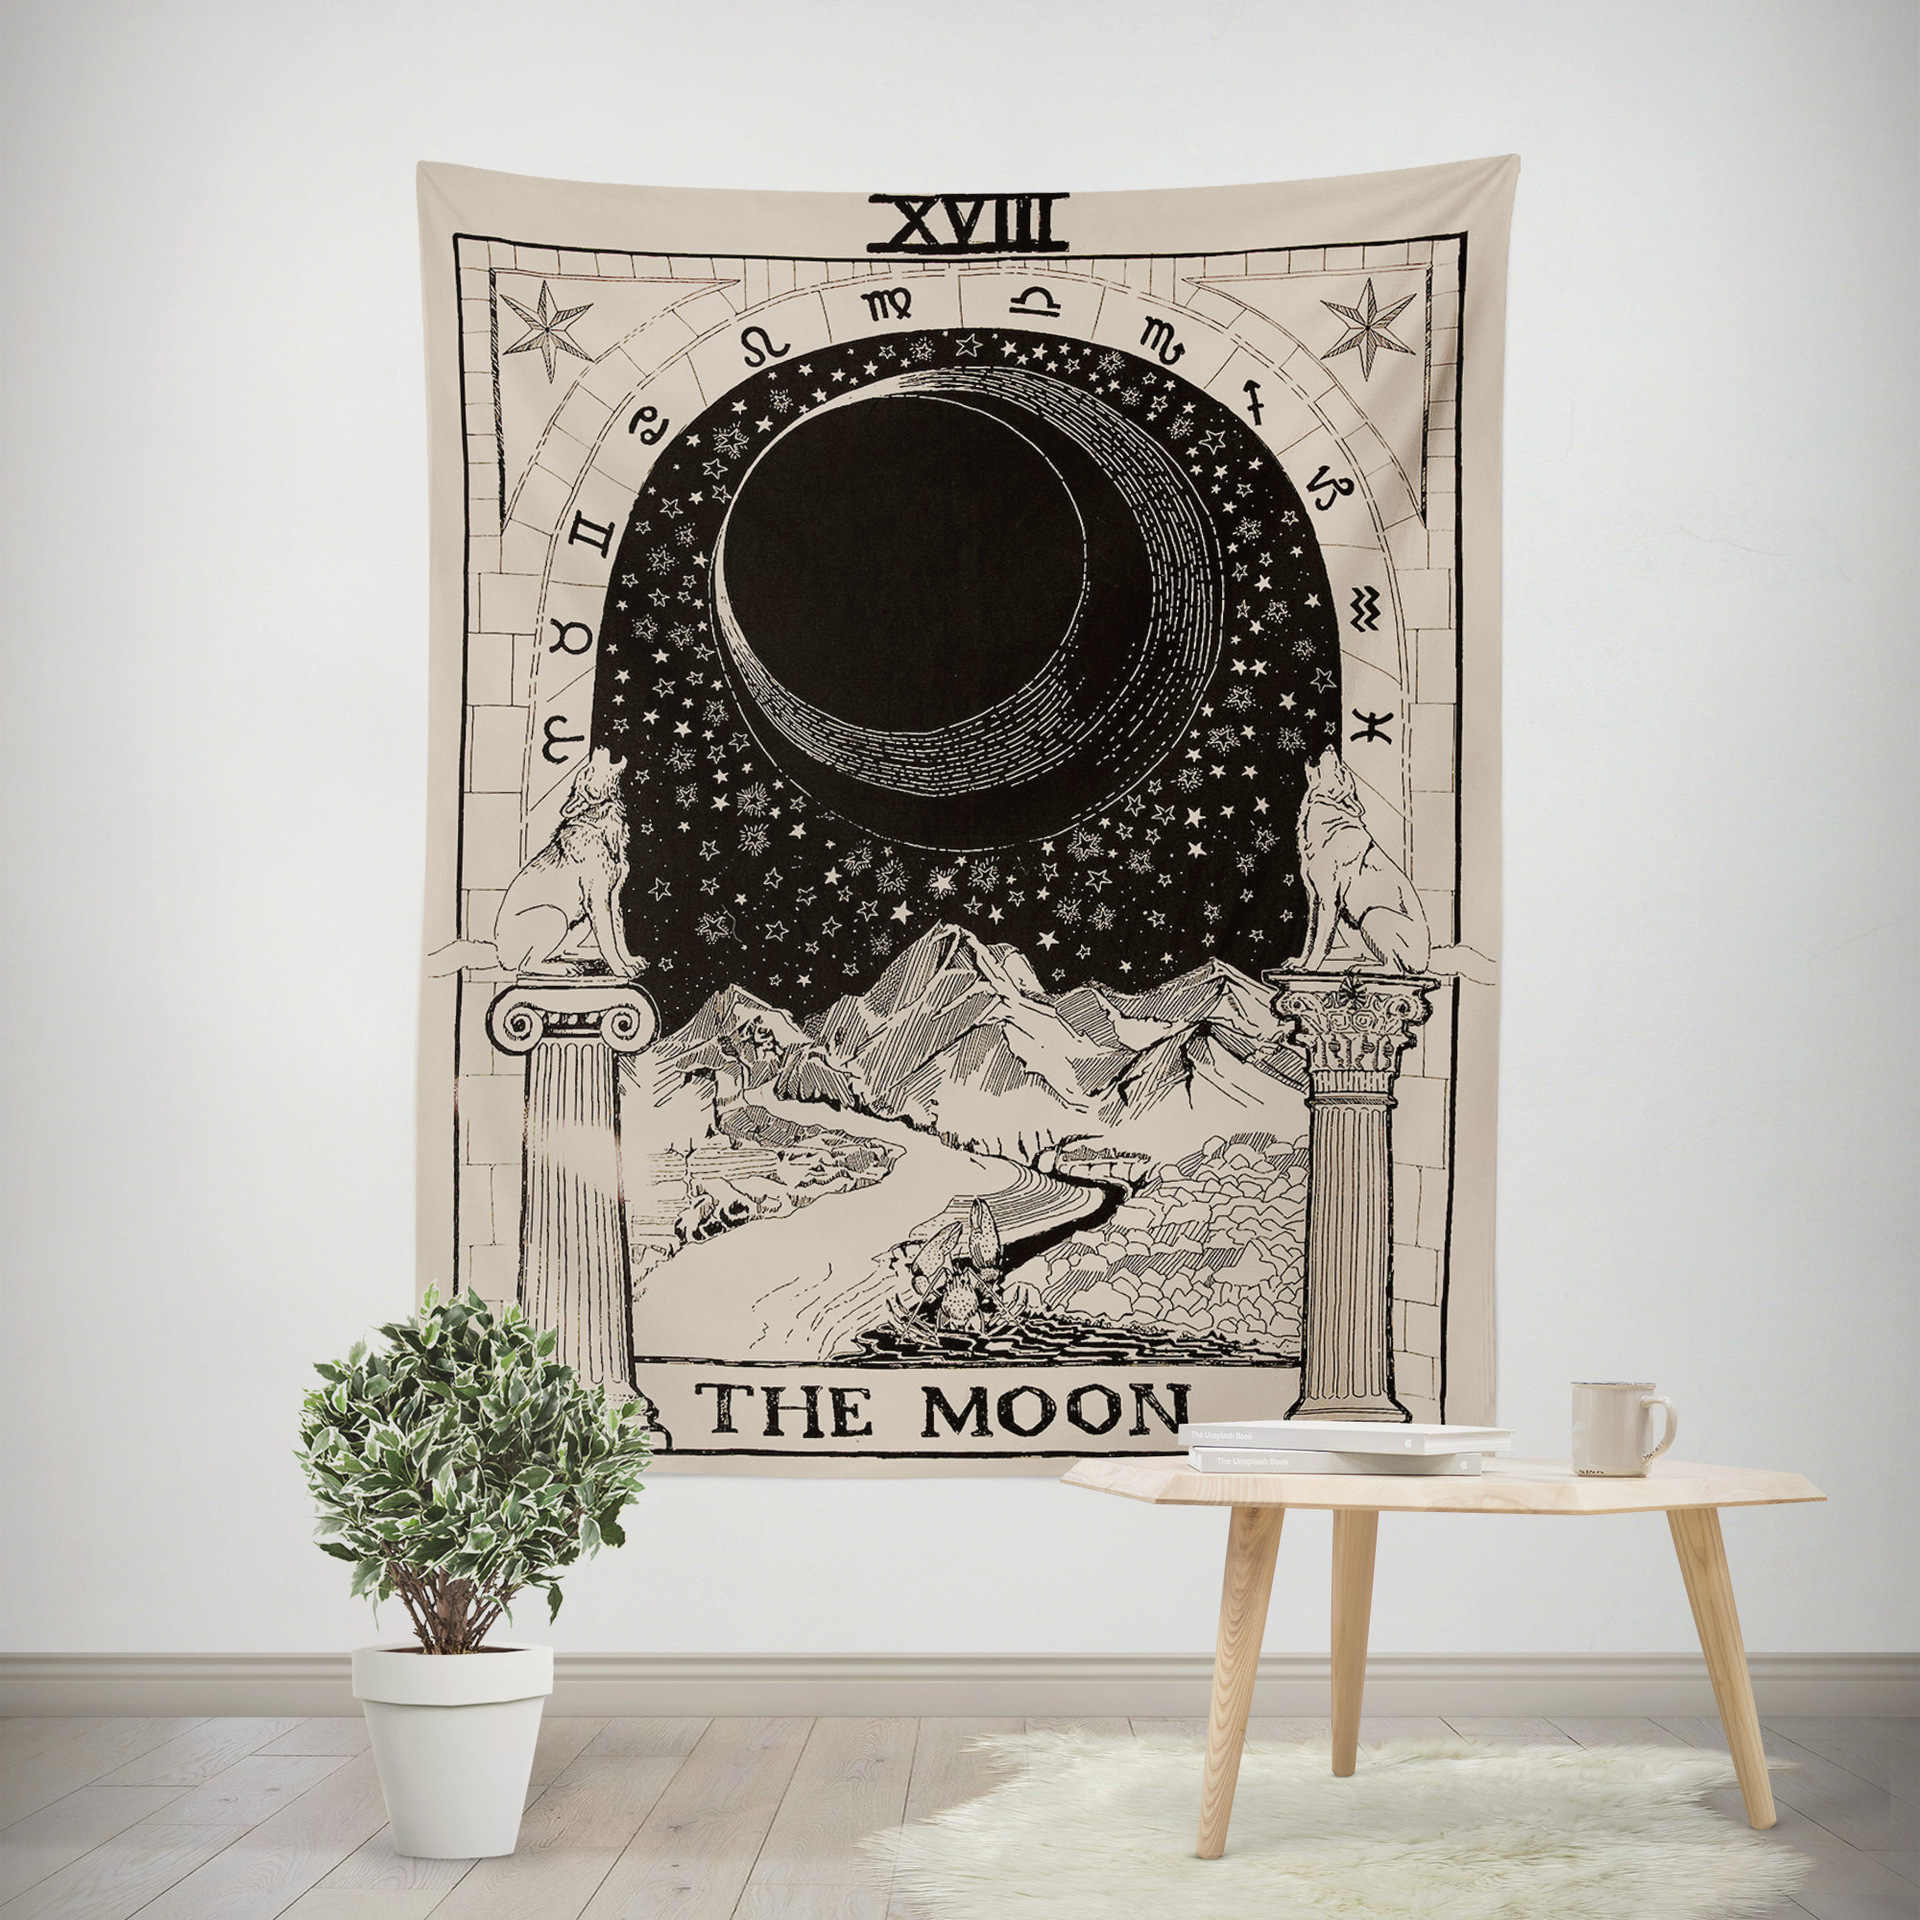 Wandteppich Modern Aesthetic Tapestry Psychedelic Modern Art Tarot Moon Tapestry Wall Hanging Headboard Large Wandteppich Room Decoration Eb50gt|tapestry| - Aliexpress